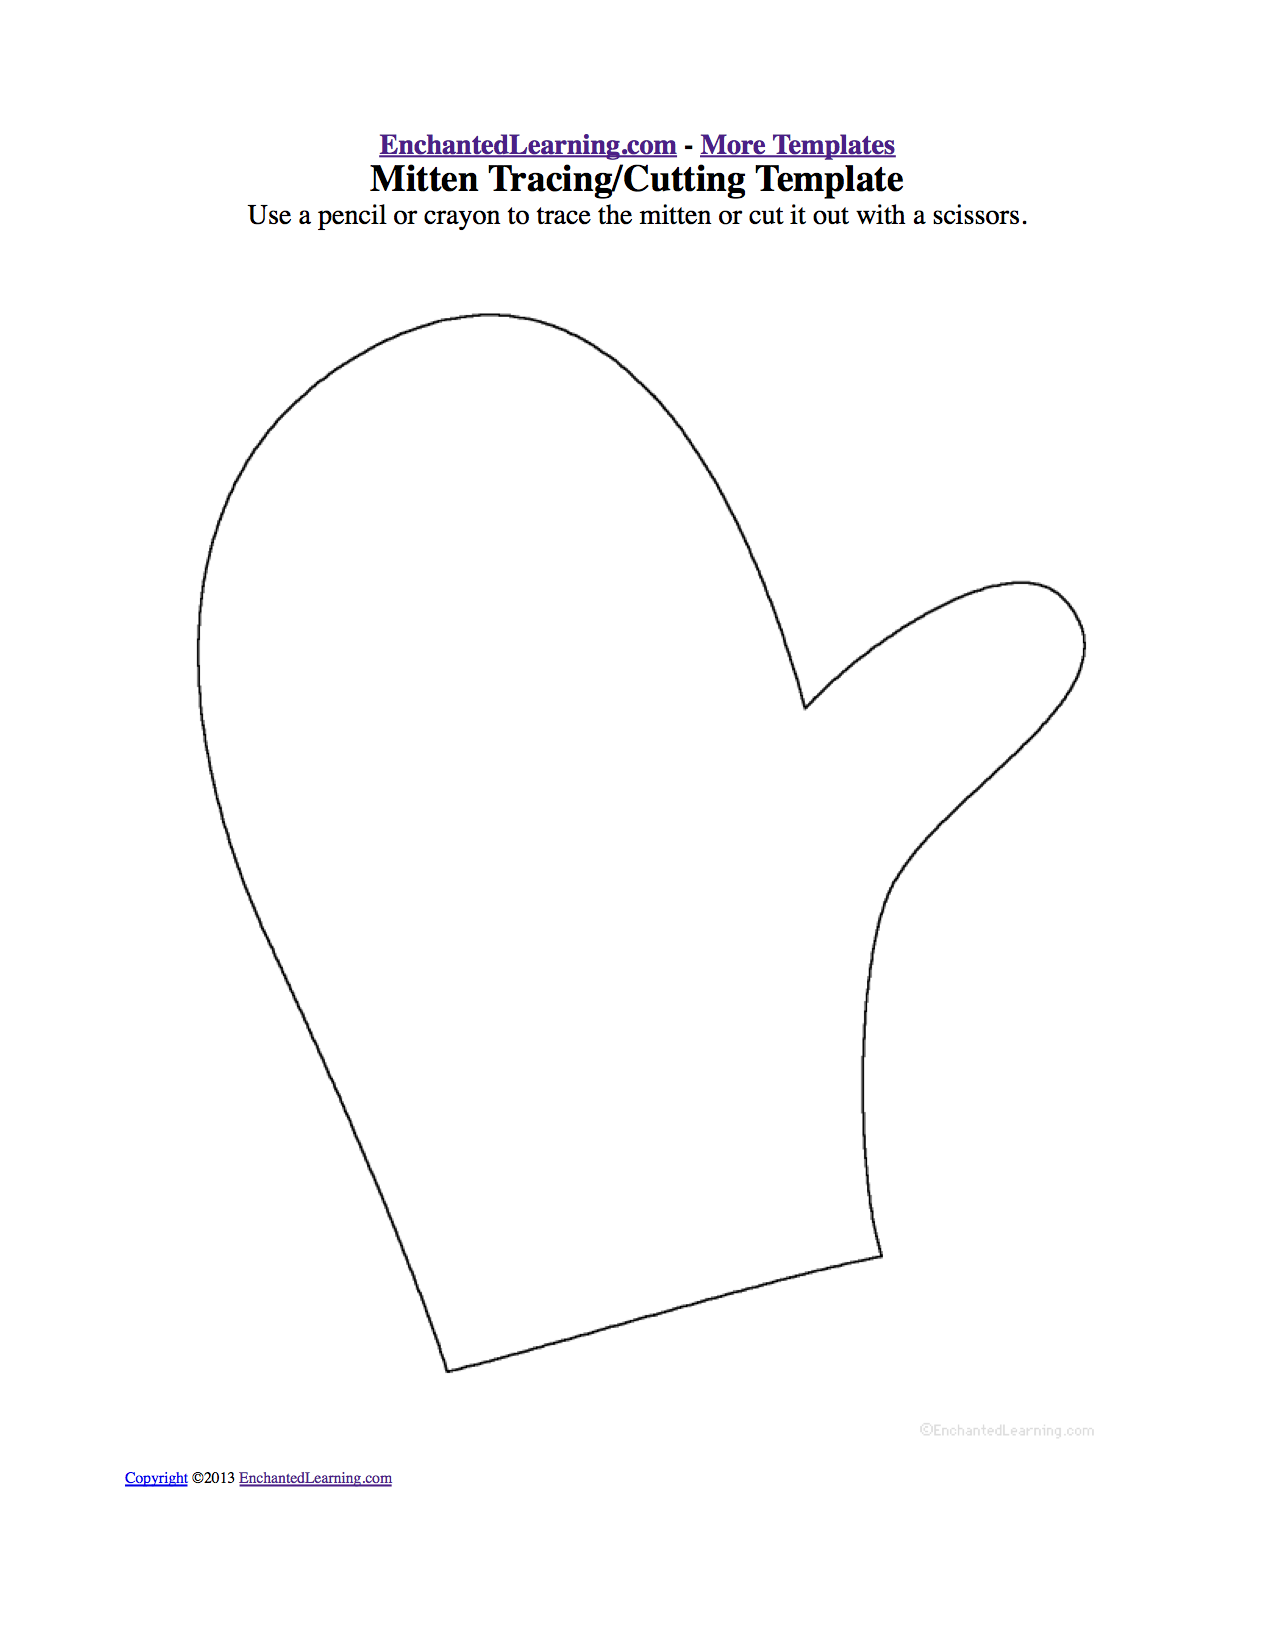 TracingCutting Templates EnchantedLearning – Cutting Worksheet